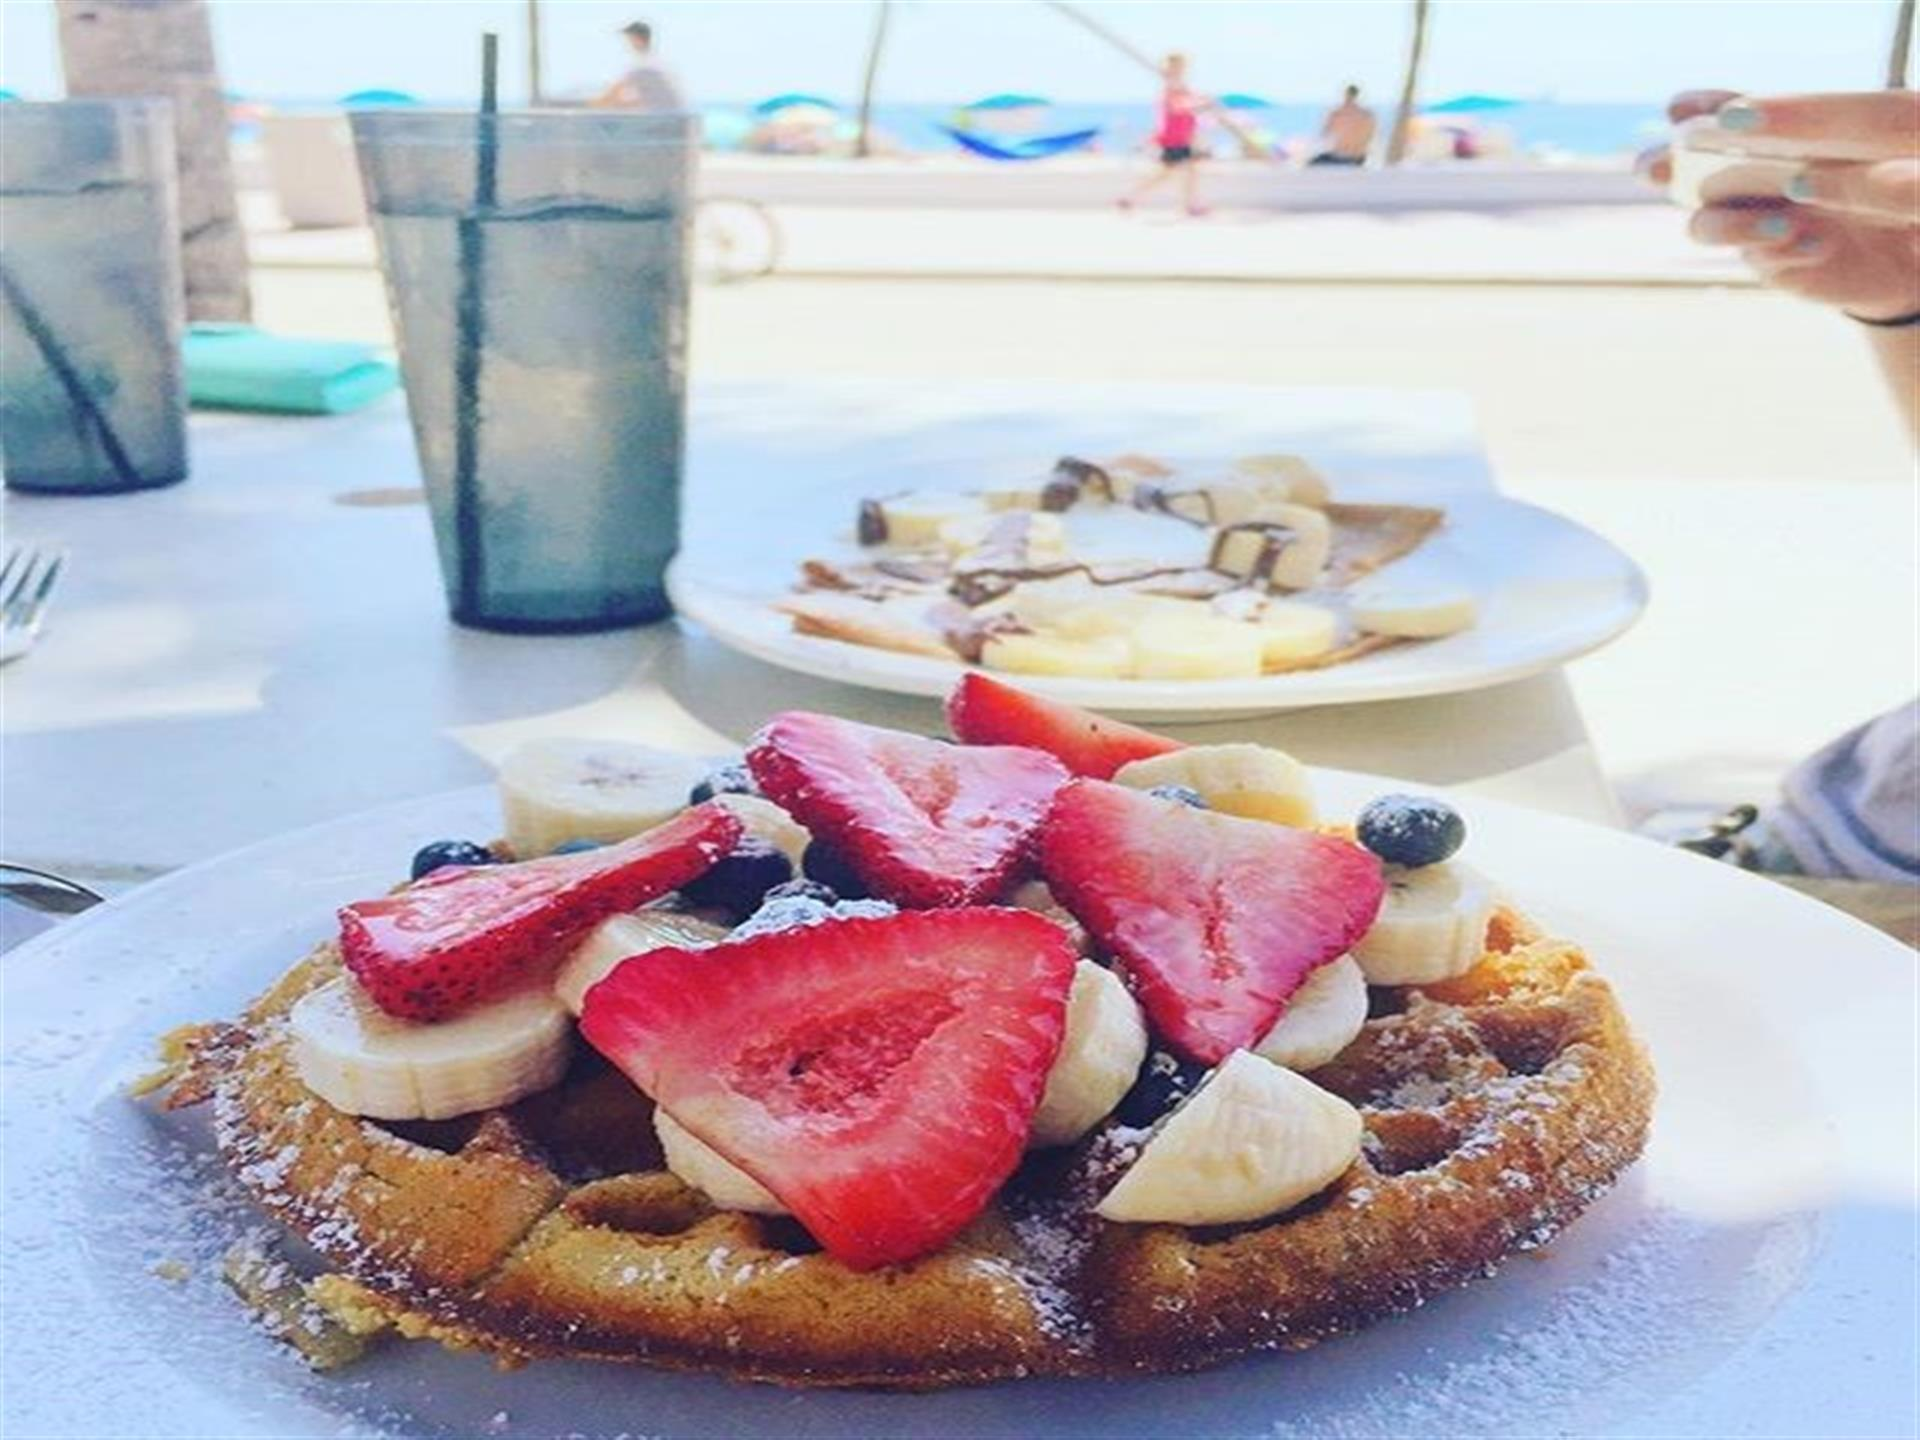 Waffles with Strawberries, Blueberries and Bananas - With a View